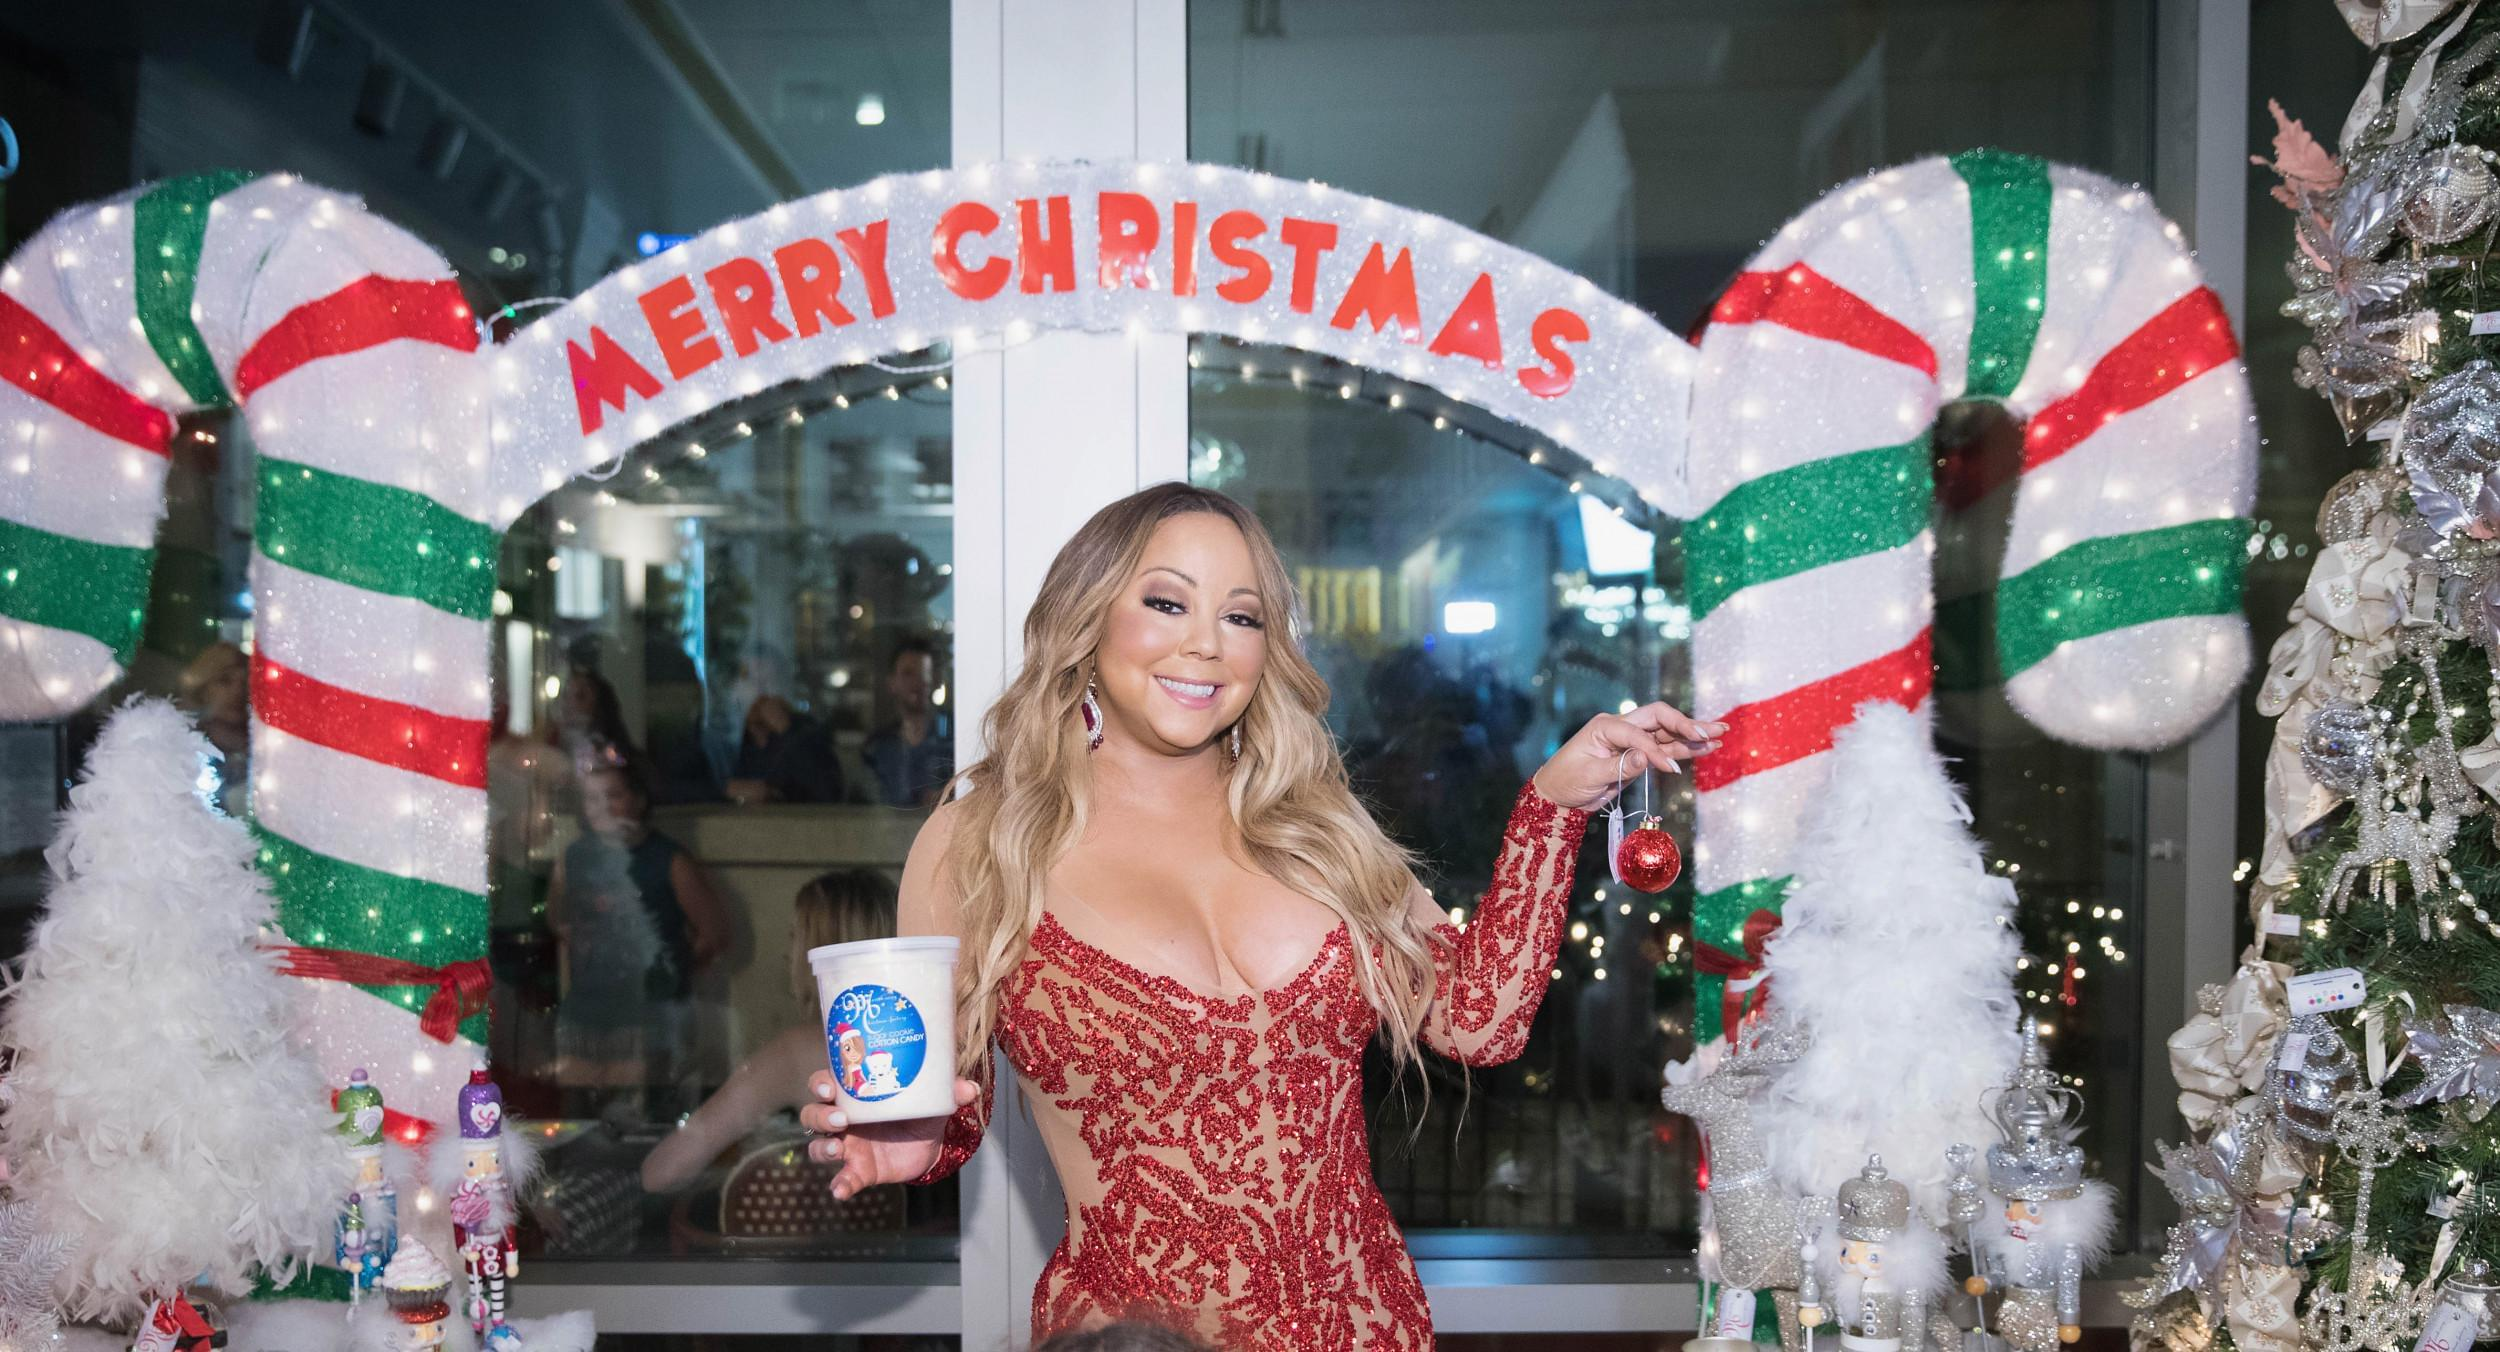 Mariah Carey Says It's Too Early for 'All I Want for Christmas'